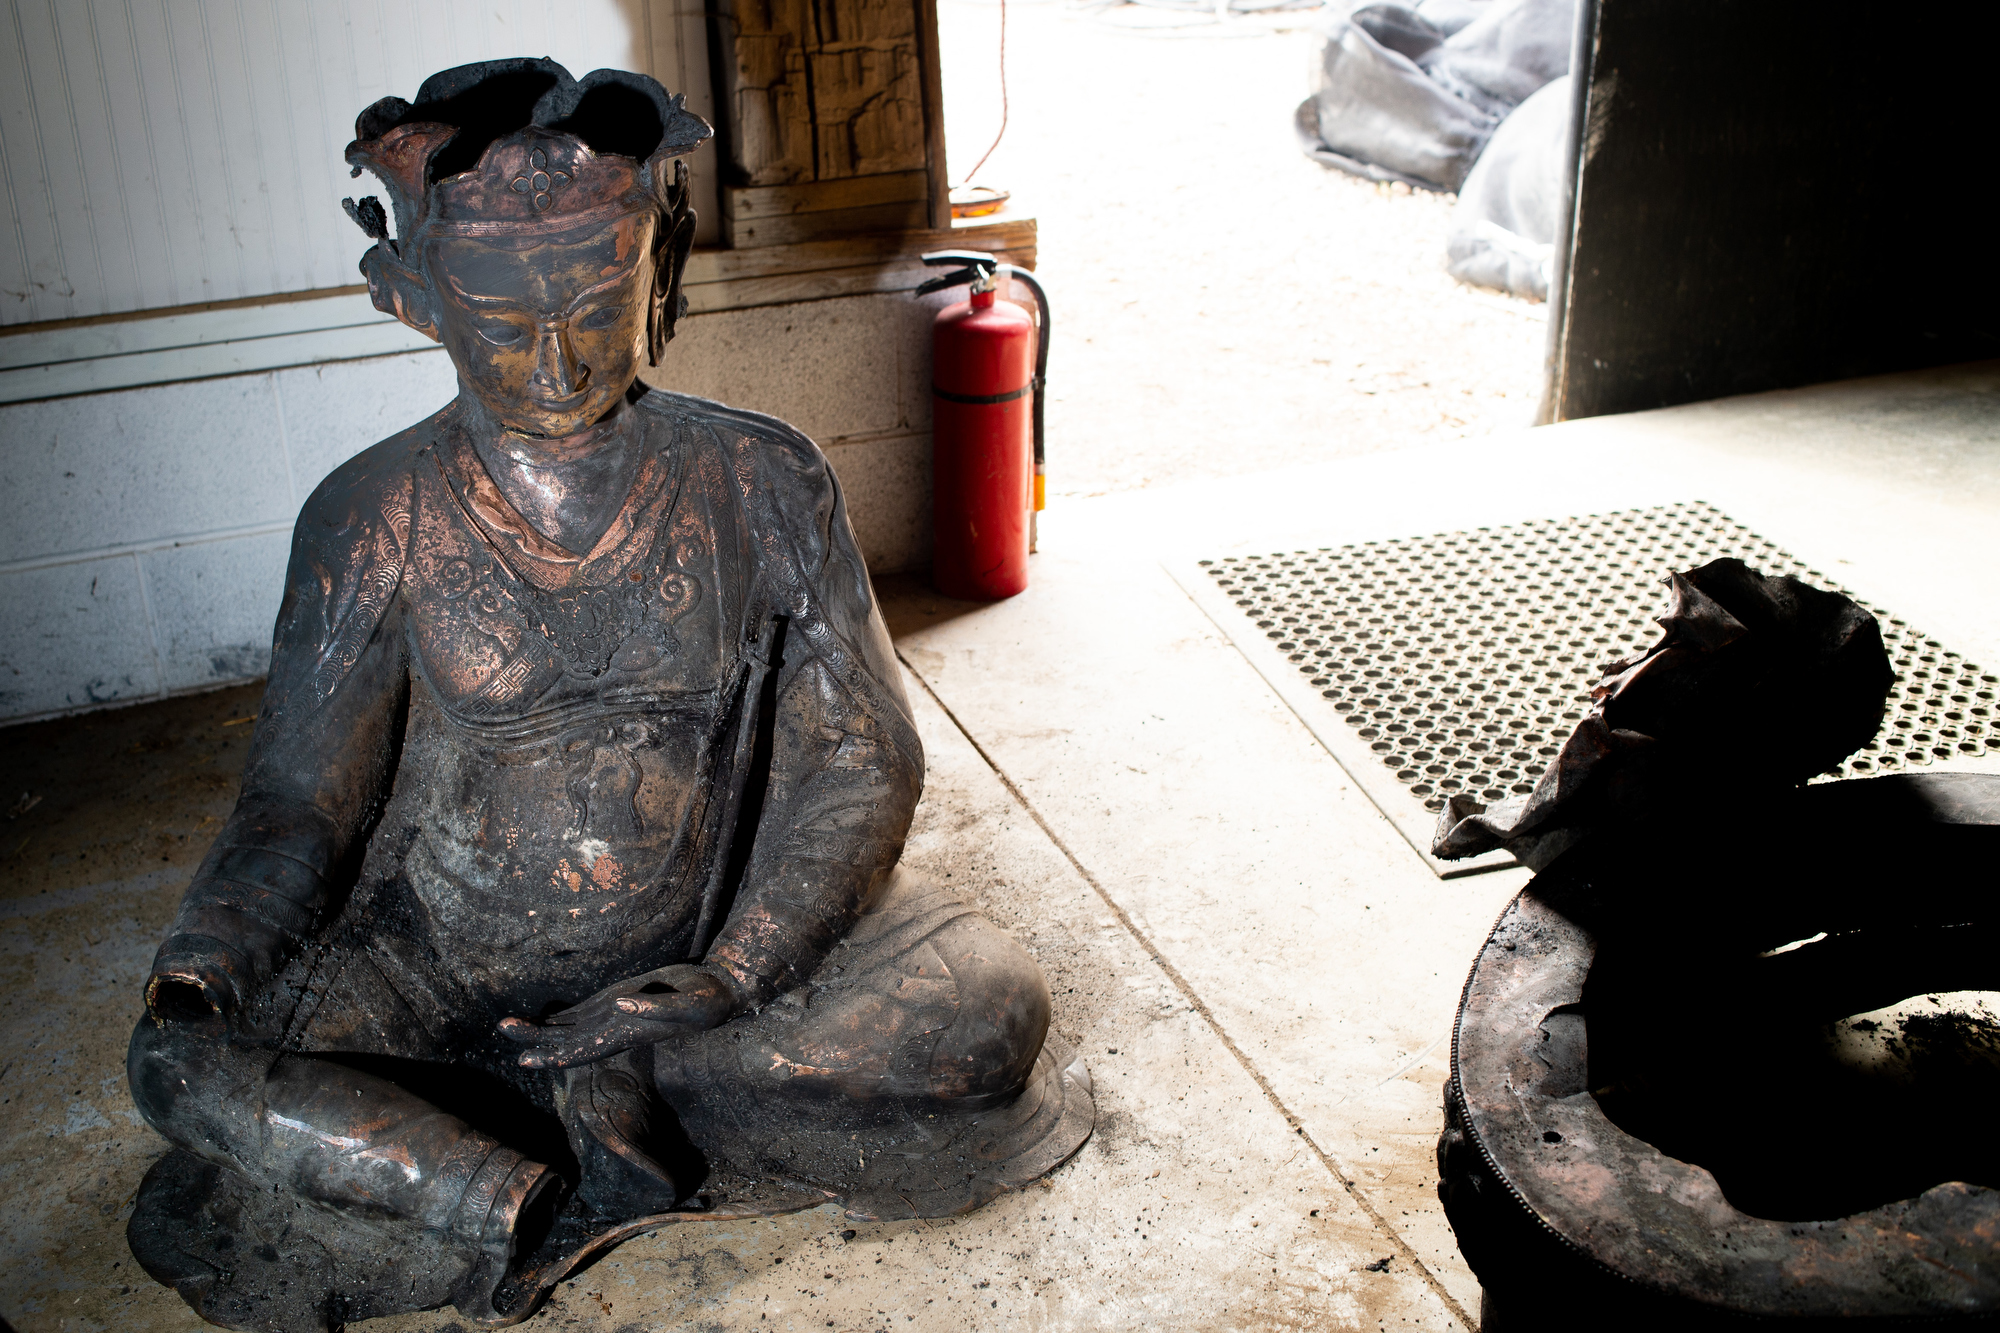 Buddhist community that lost temple to barn fire vows to rebuild